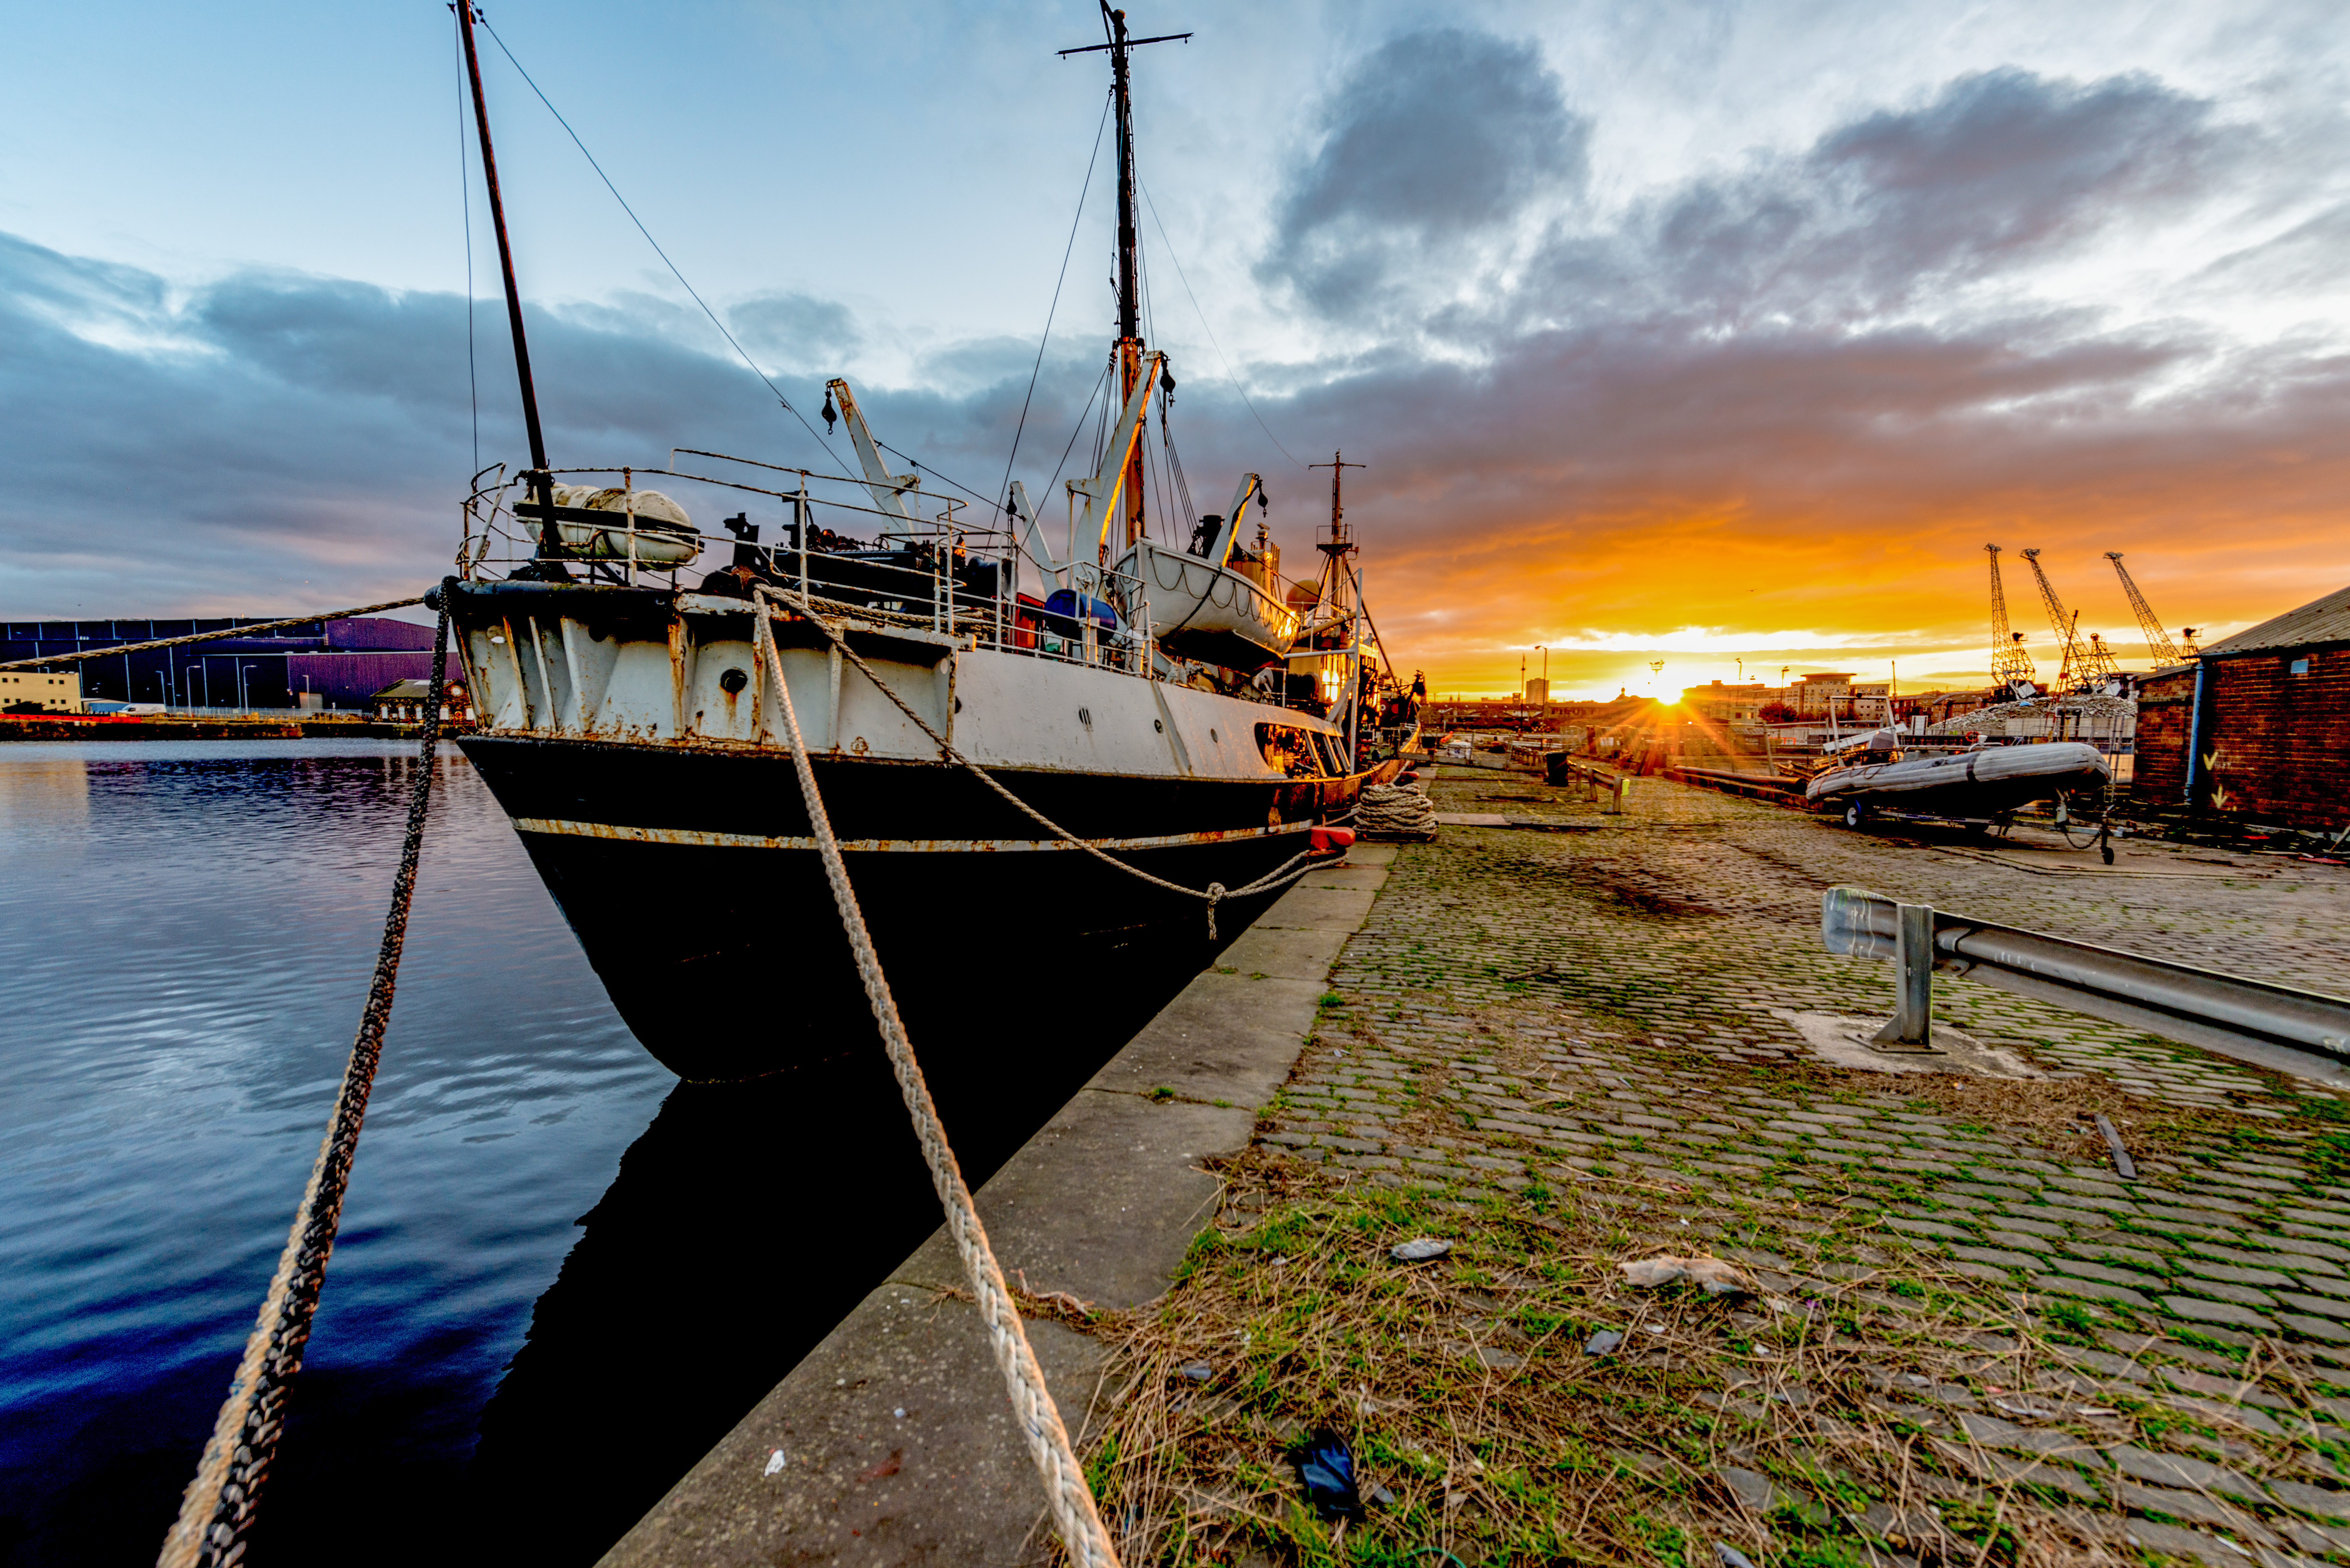 Explorer - sunset over Leith